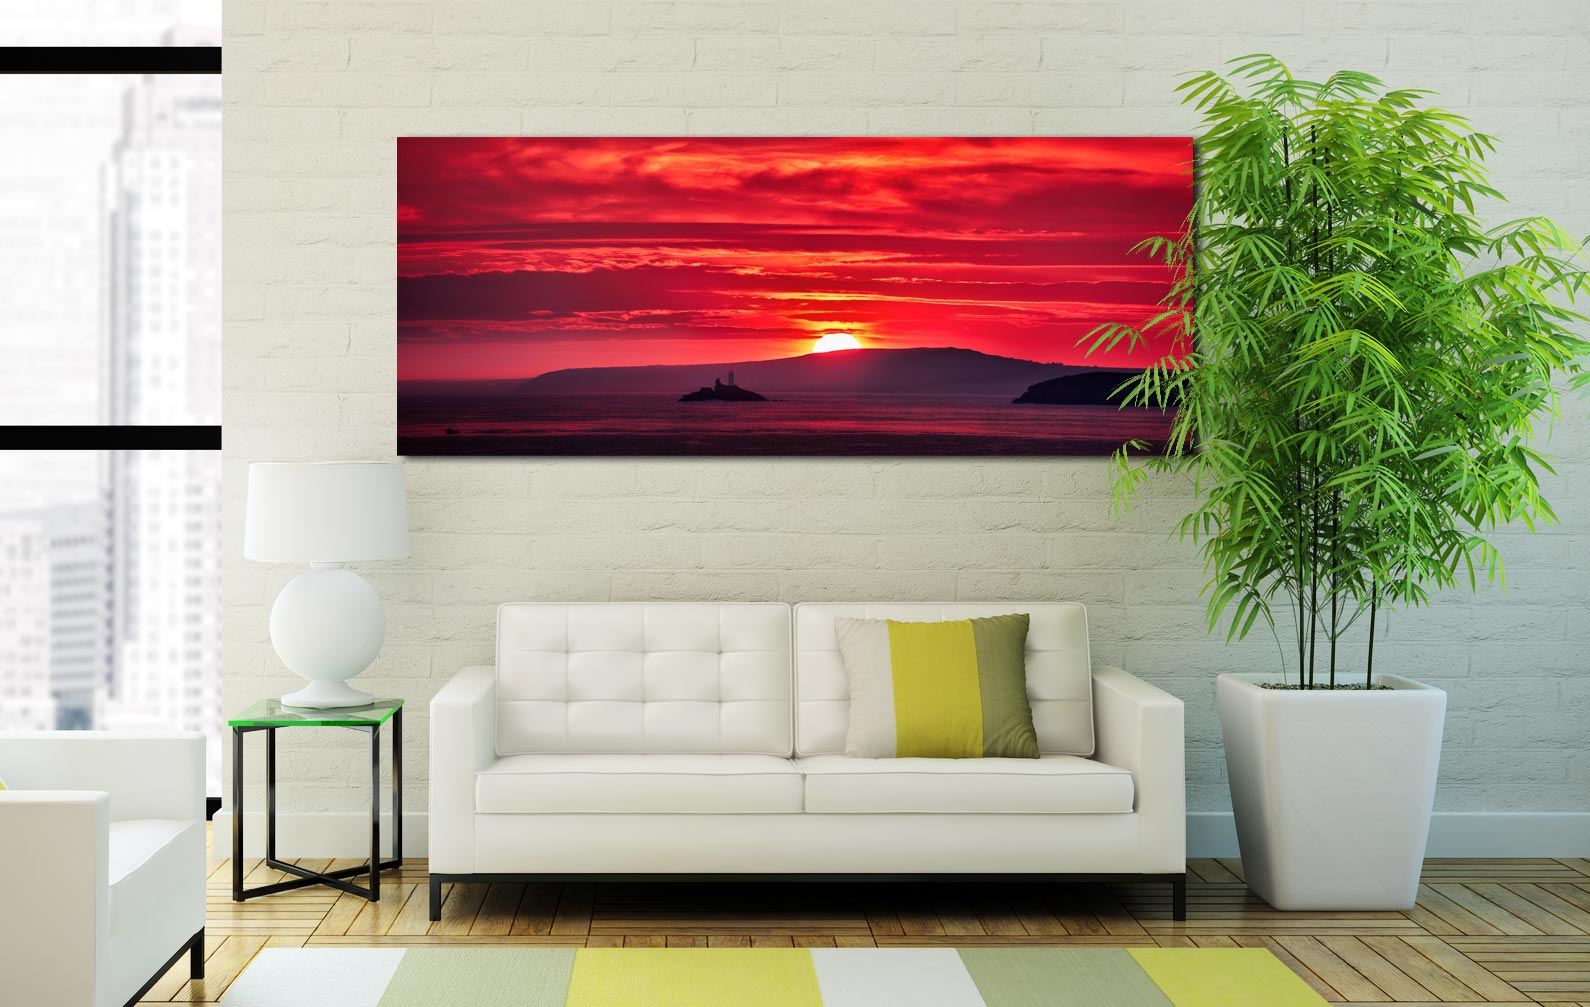 Red Sky in the morning over Godrevy Lighthouse - Print Aluminium Backing With Acrylic Glazing on Wall